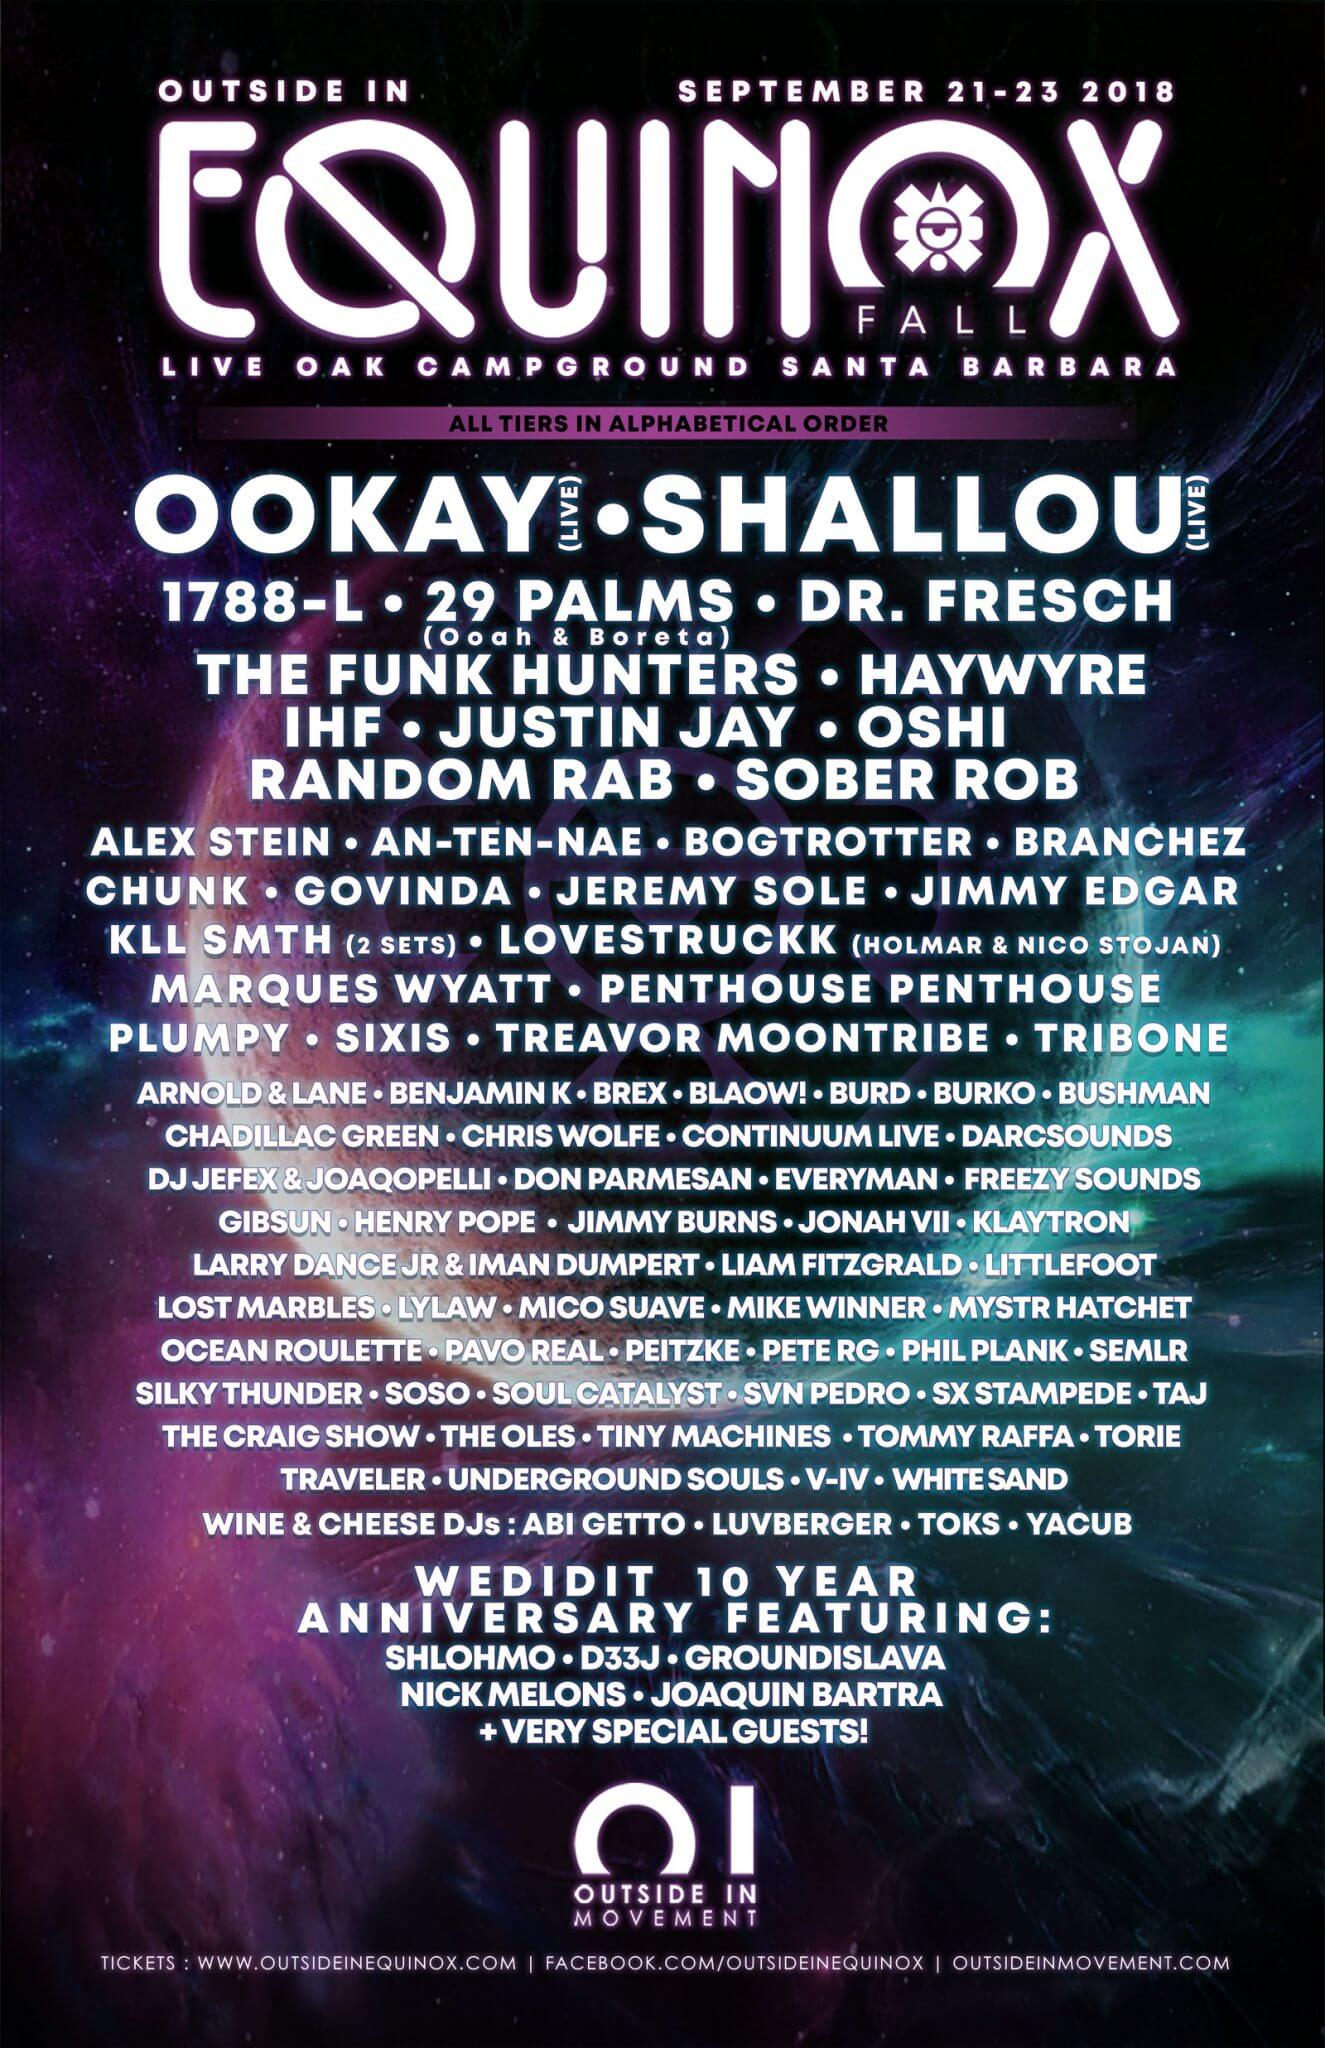 OI Equinox Fall 2018 Official Poster